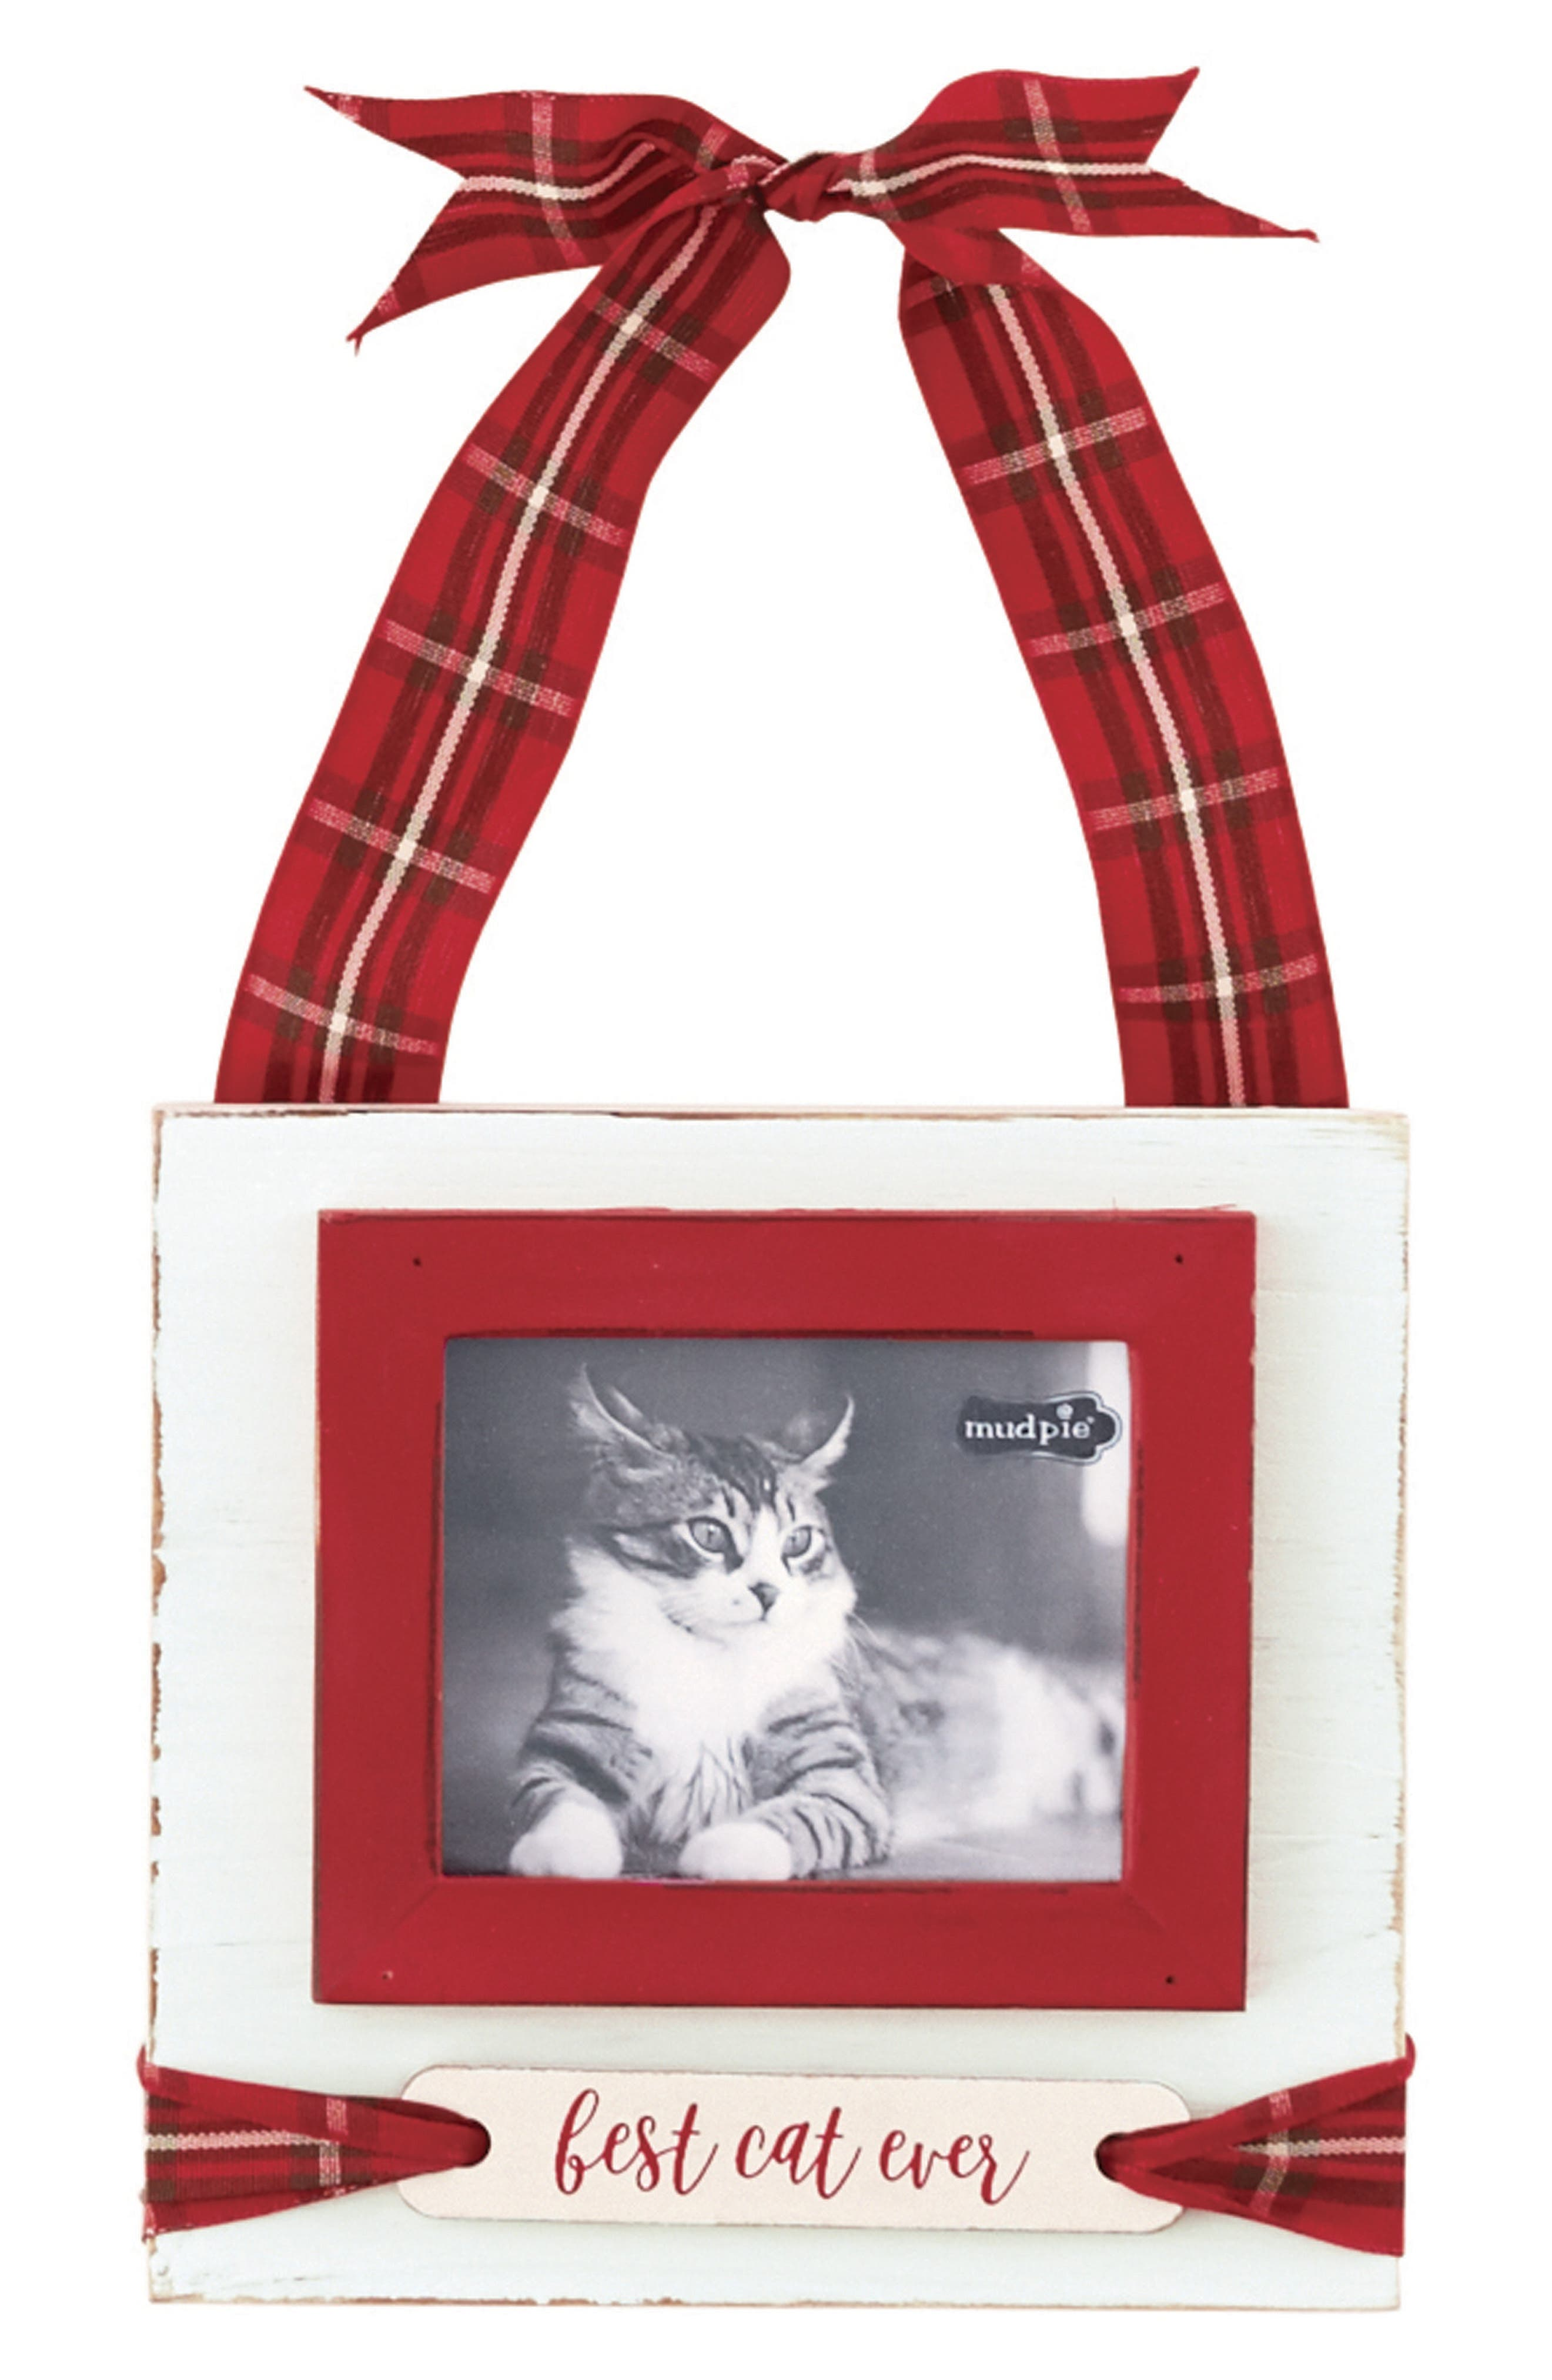 Best Cat Ever Hanging Frame Ornament,                             Main thumbnail 1, color,                             White/ Red